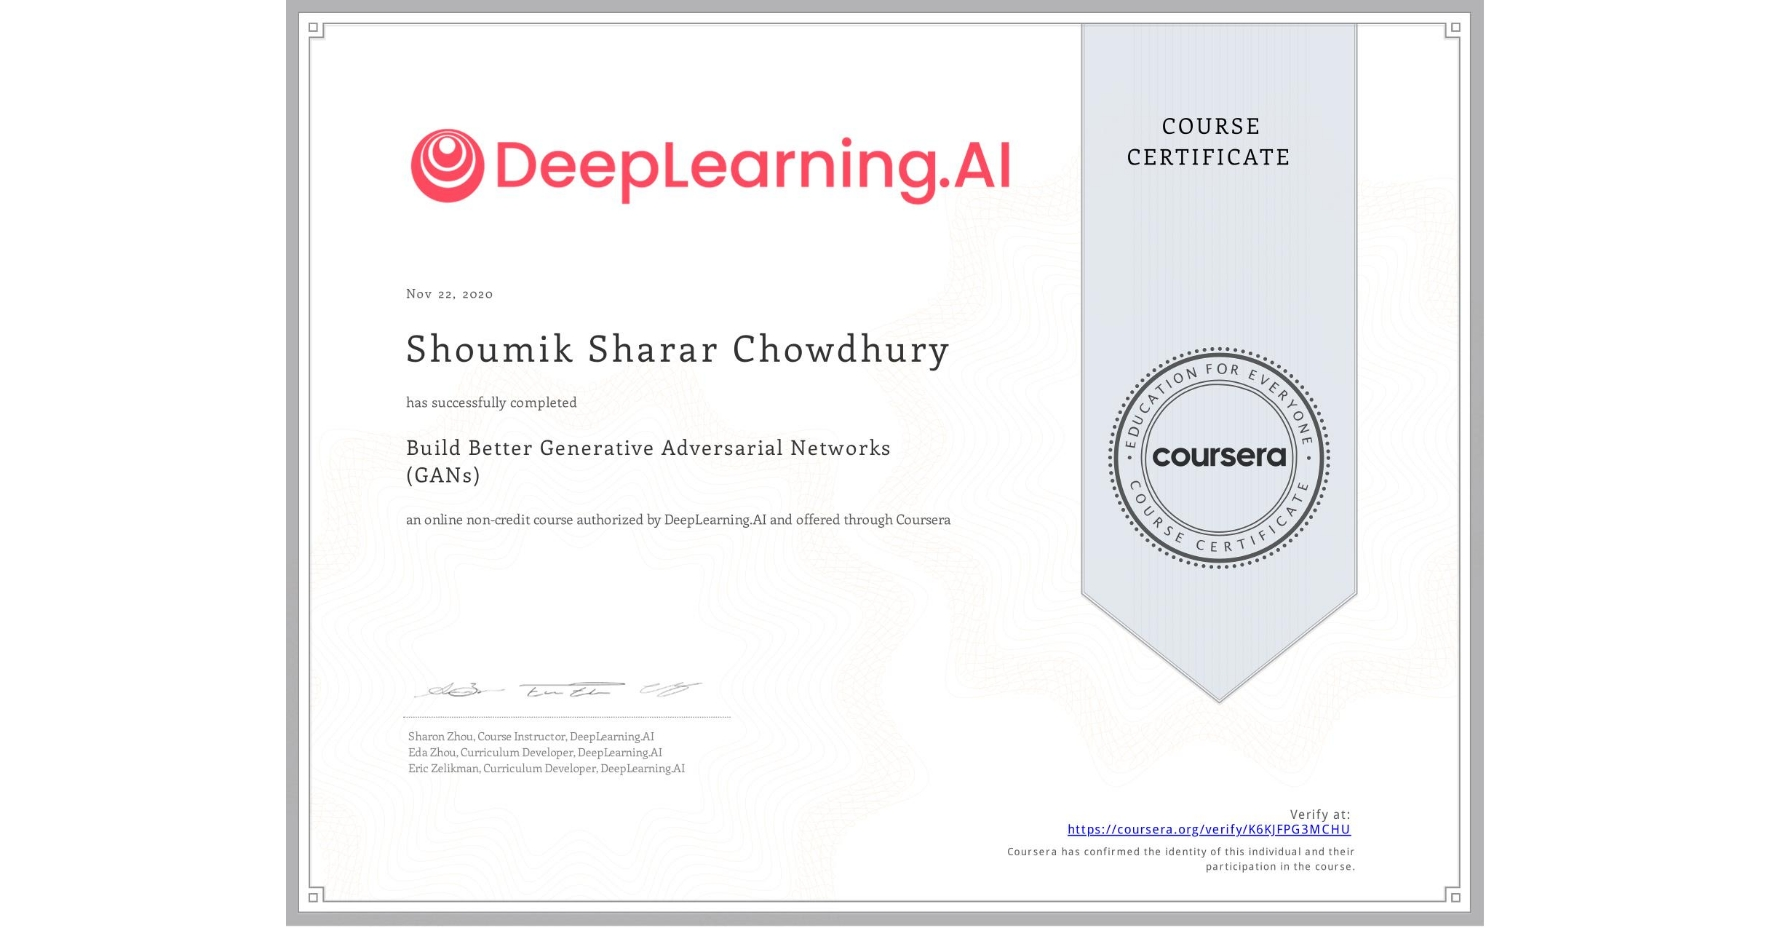 View certificate for Shoumik Sharar Chowdhury, Build Better Generative Adversarial Networks (GANs), an online non-credit course authorized by DeepLearning.AI and offered through Coursera